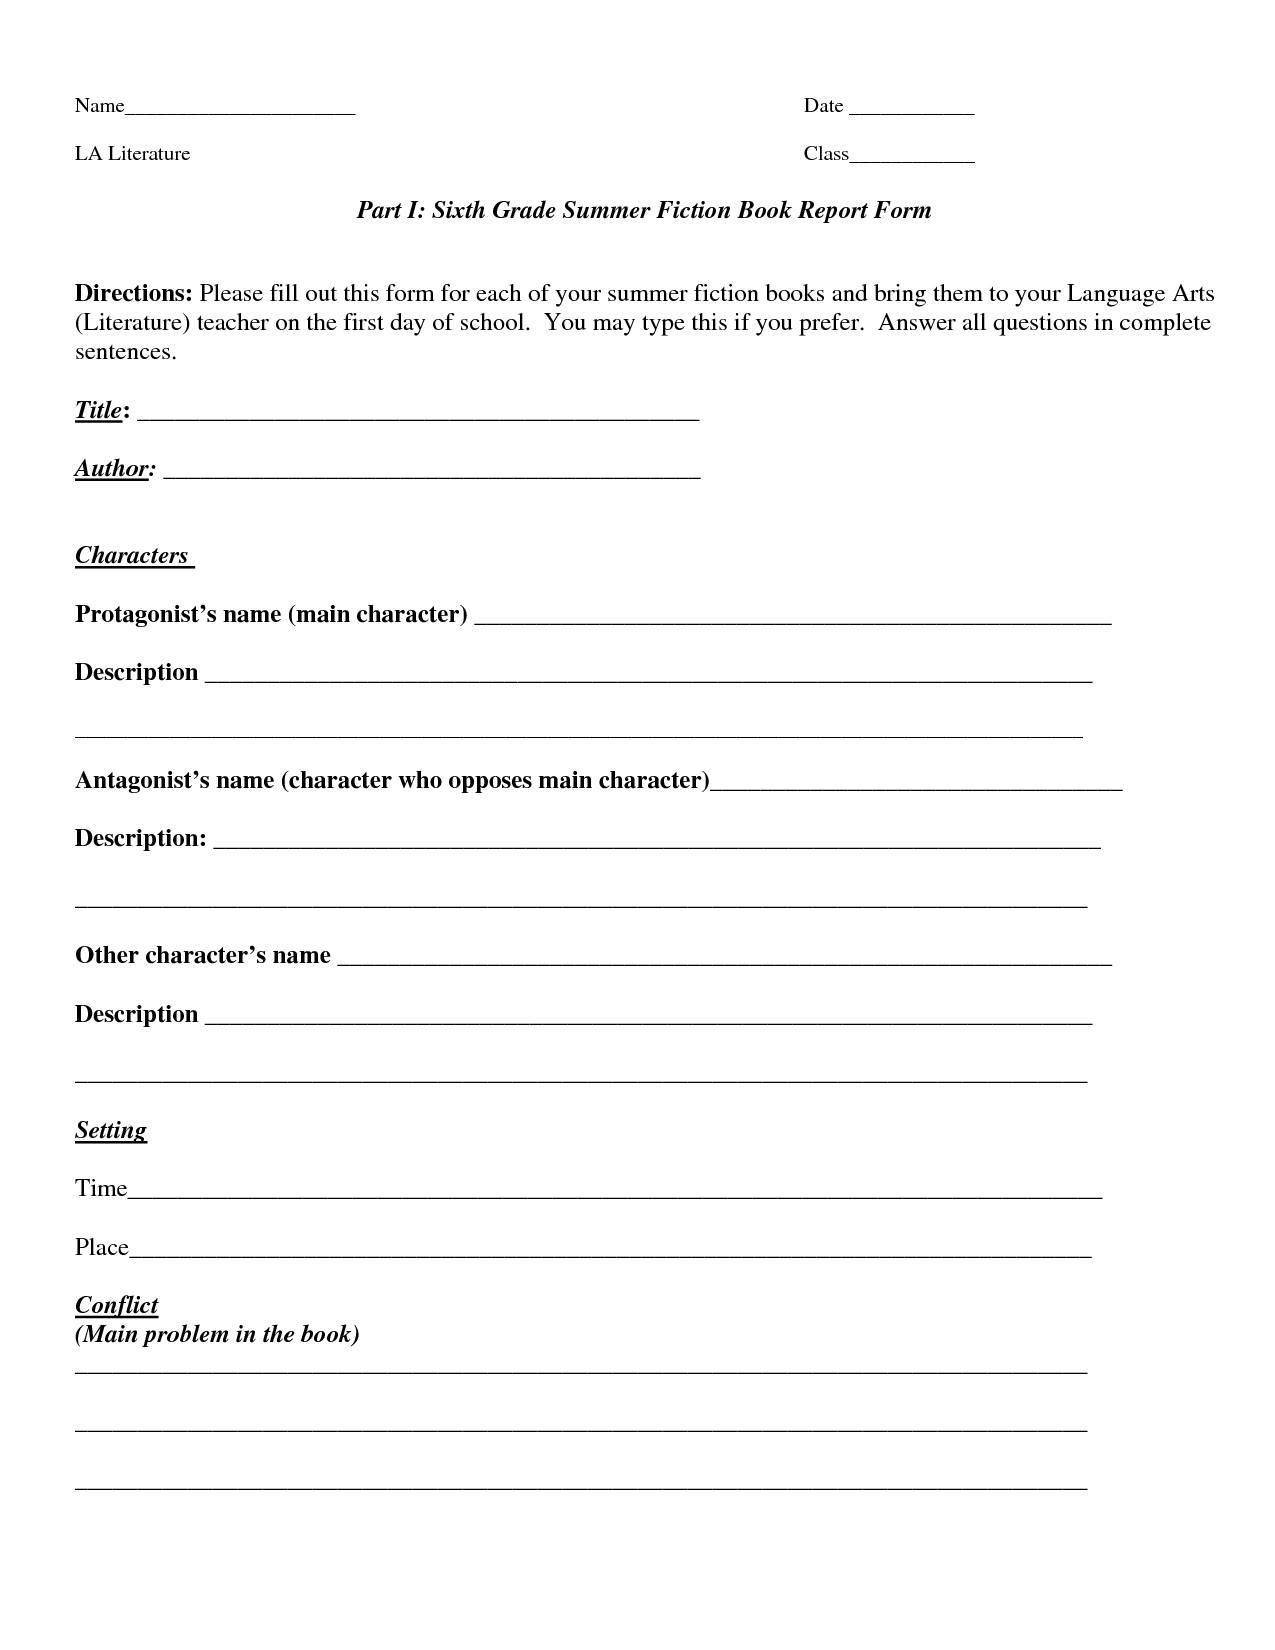 Book Report Template  Part I Sixth Grade Summer Fiction Book